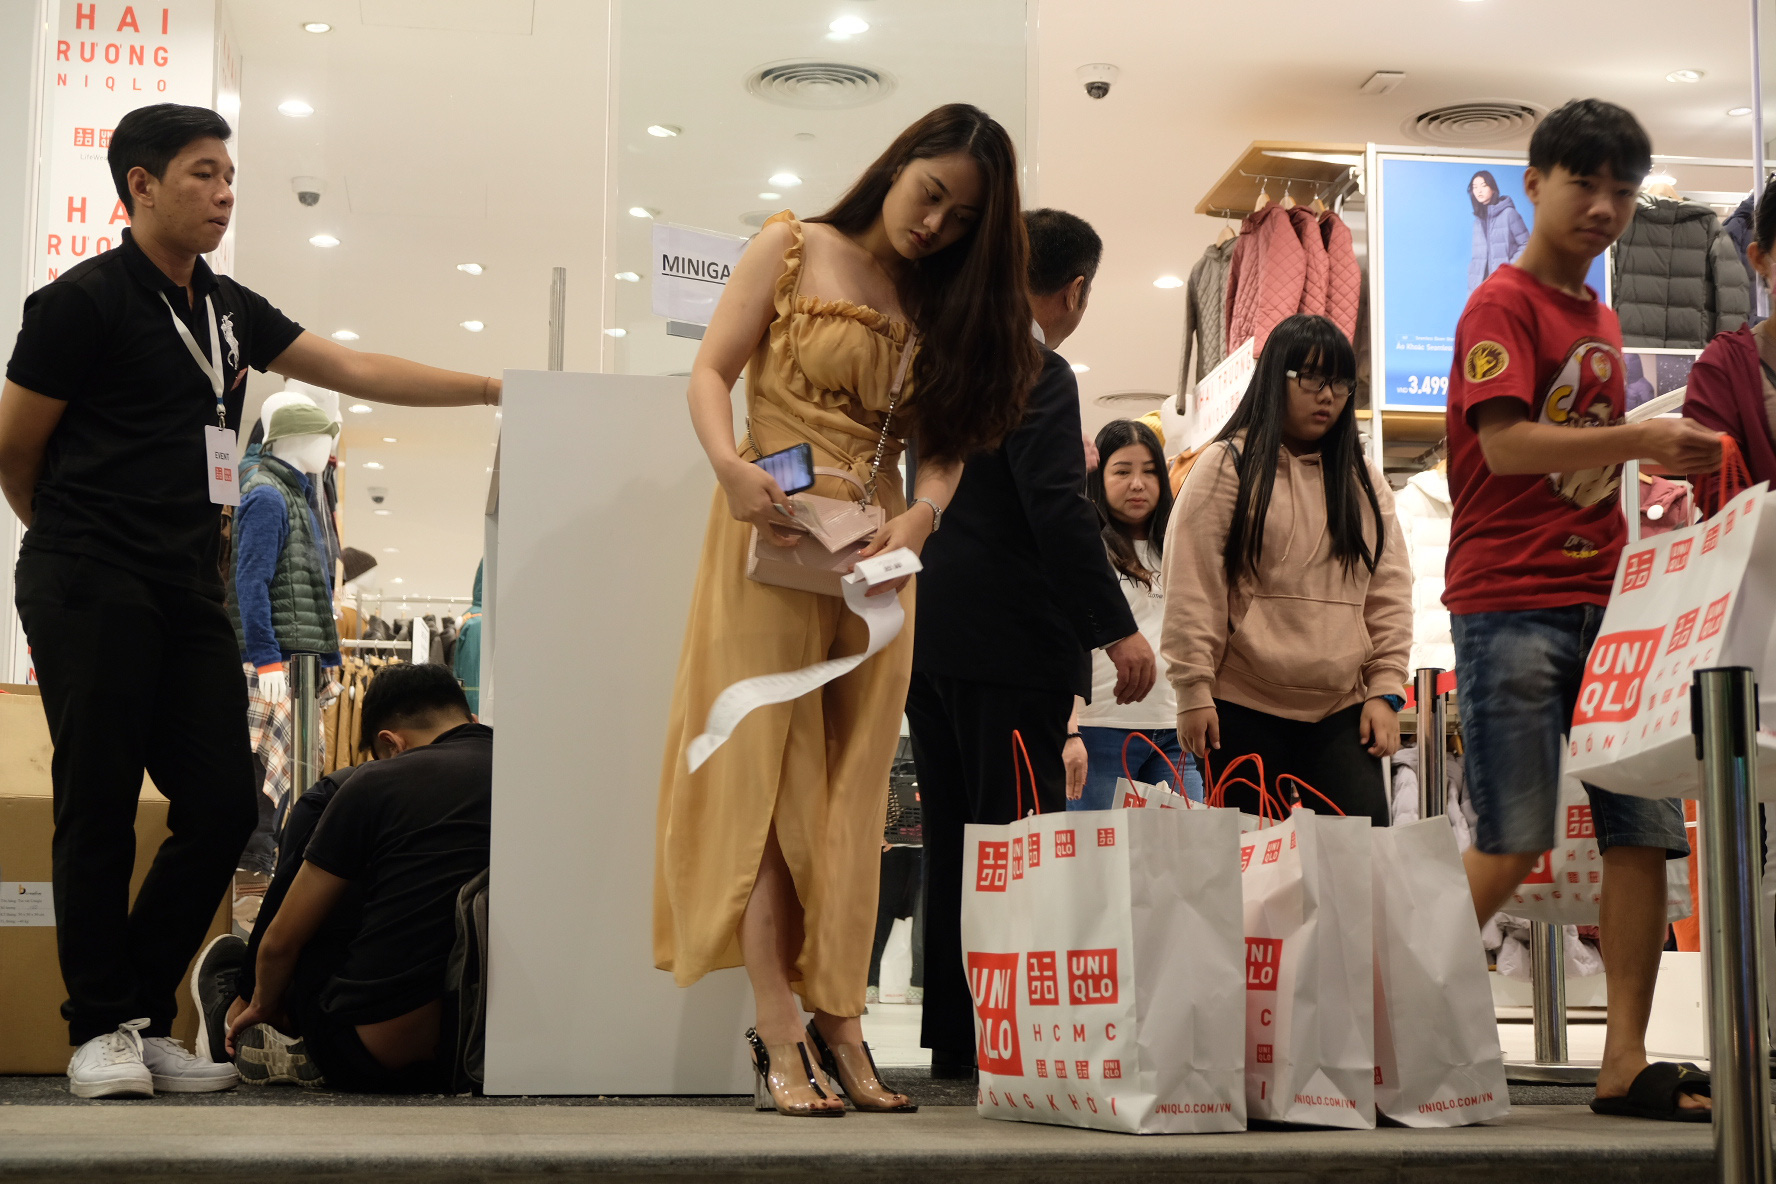 A woman leaves the store with multiple shopping bags. Photo: Bong Mai / Tuoi Tre